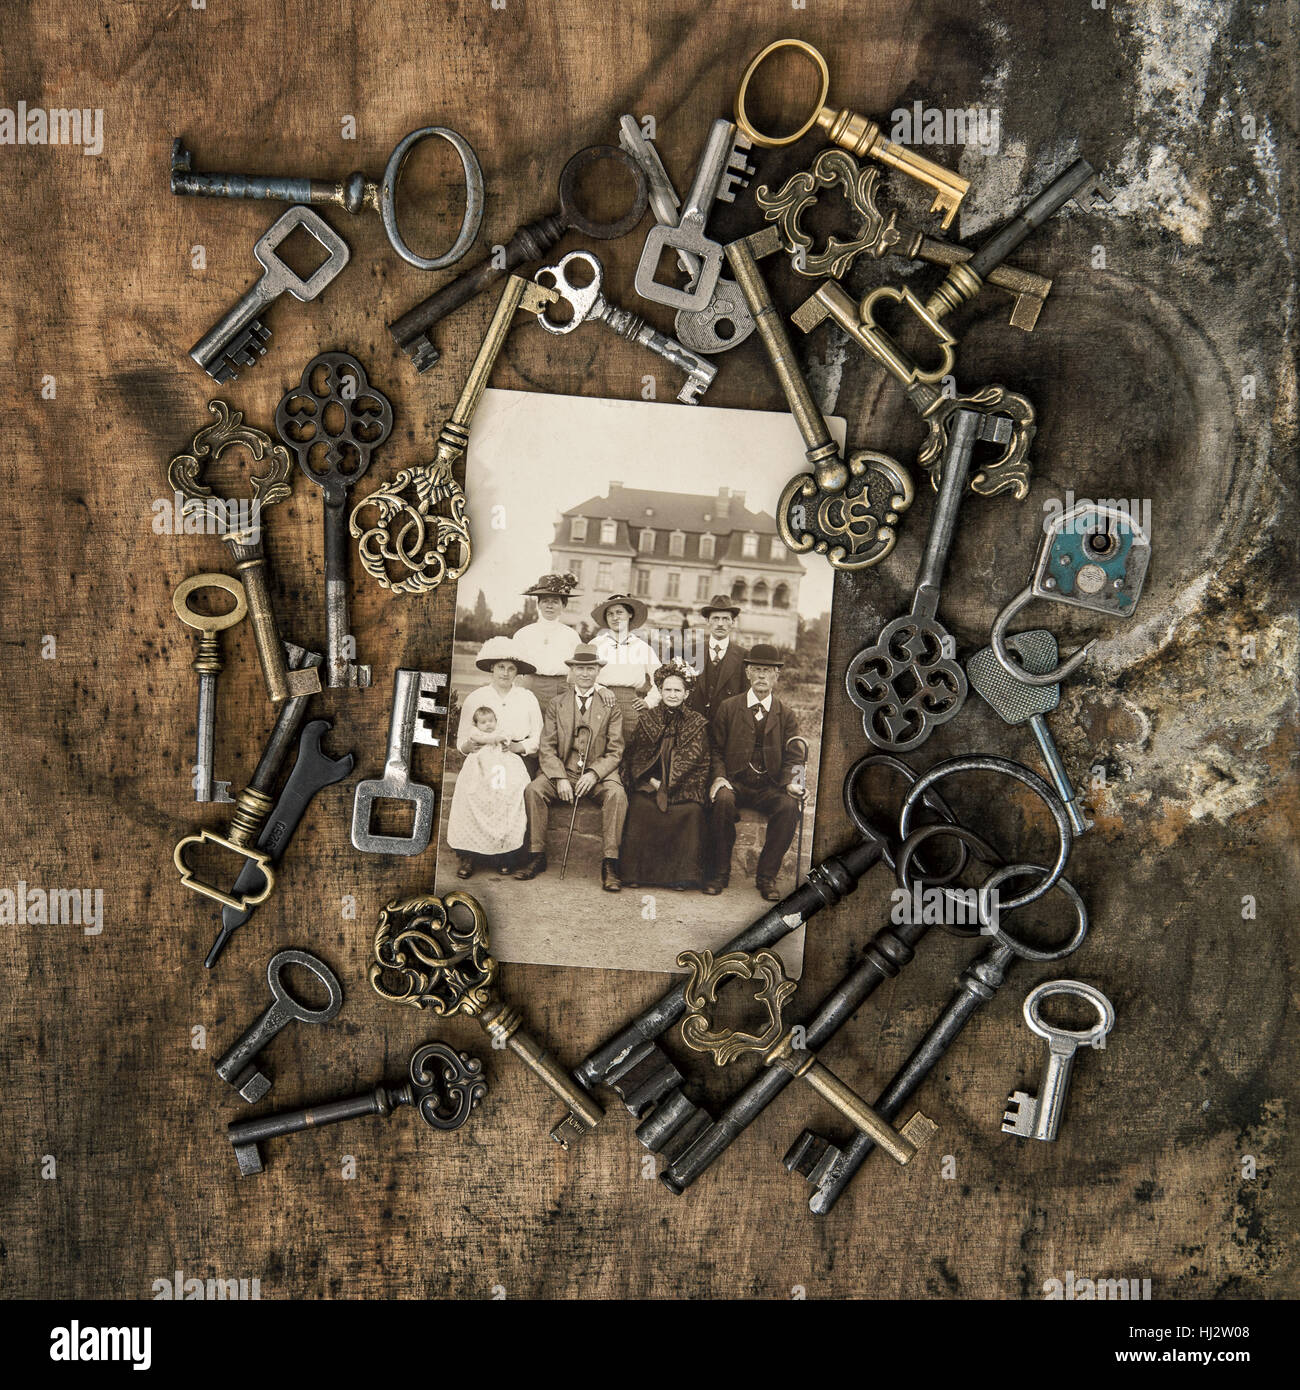 Vintage photo family portrait with house on background. Old keys over wooden texture Stock Photo